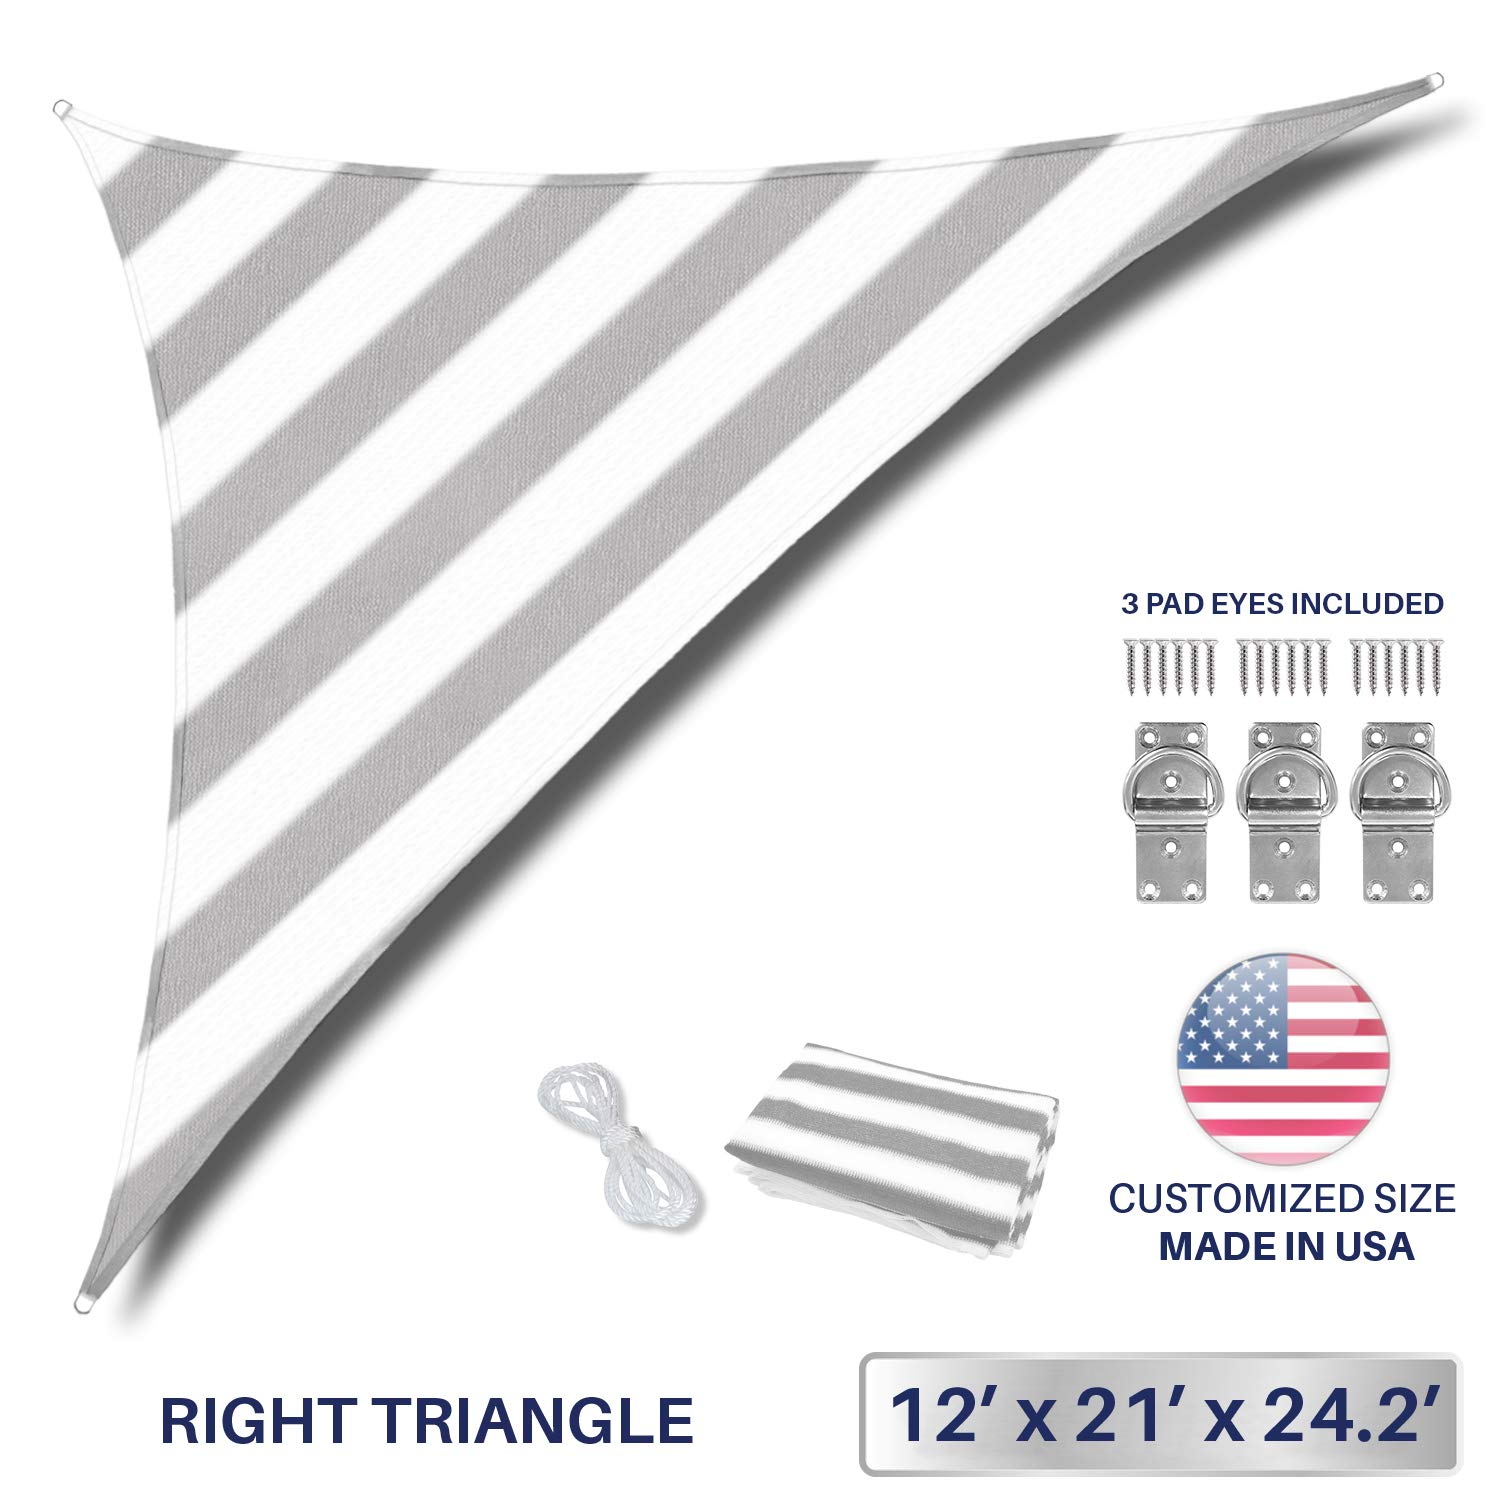 Windscreen4less 12 x 21 x 24.2 Triangle Sun Shade Sail – Wide Grey White Stripes Durable UV Shelter Canopy for Patio Outdoor Backyard Included Free Pad Eyes – Custom Size 3 Year Warranty